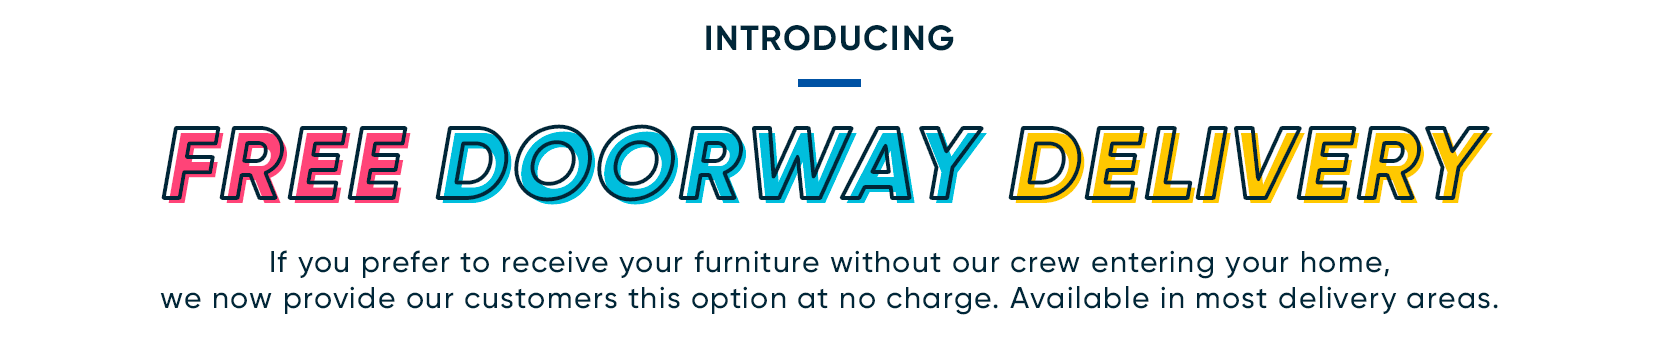 introducing free doorway delivery. If you prefer to receive your furniture without our crew entering your home, we now provide our customers this option at no charge.